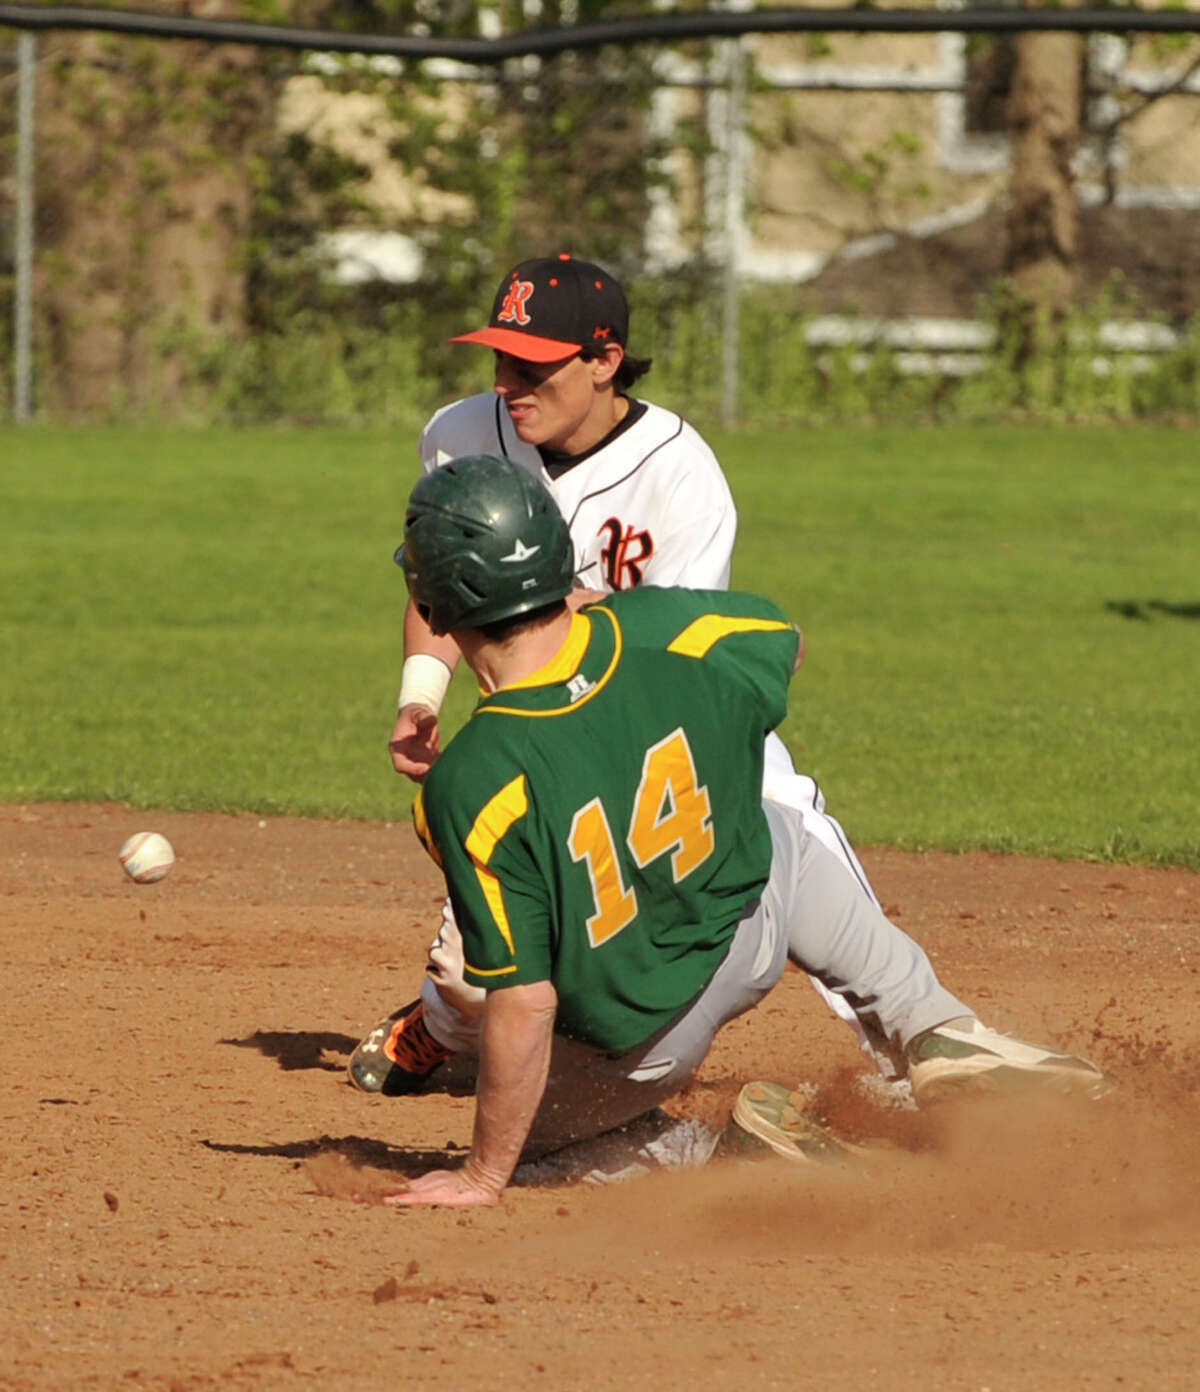 Trinity Catholic's Kevin Epp slides safely into second as Ridgefield's Harrison Siclare fails to come up with the ball during their game at the Old High School Field in Ridgefield, Conn., on Friday, April 27, 2012.